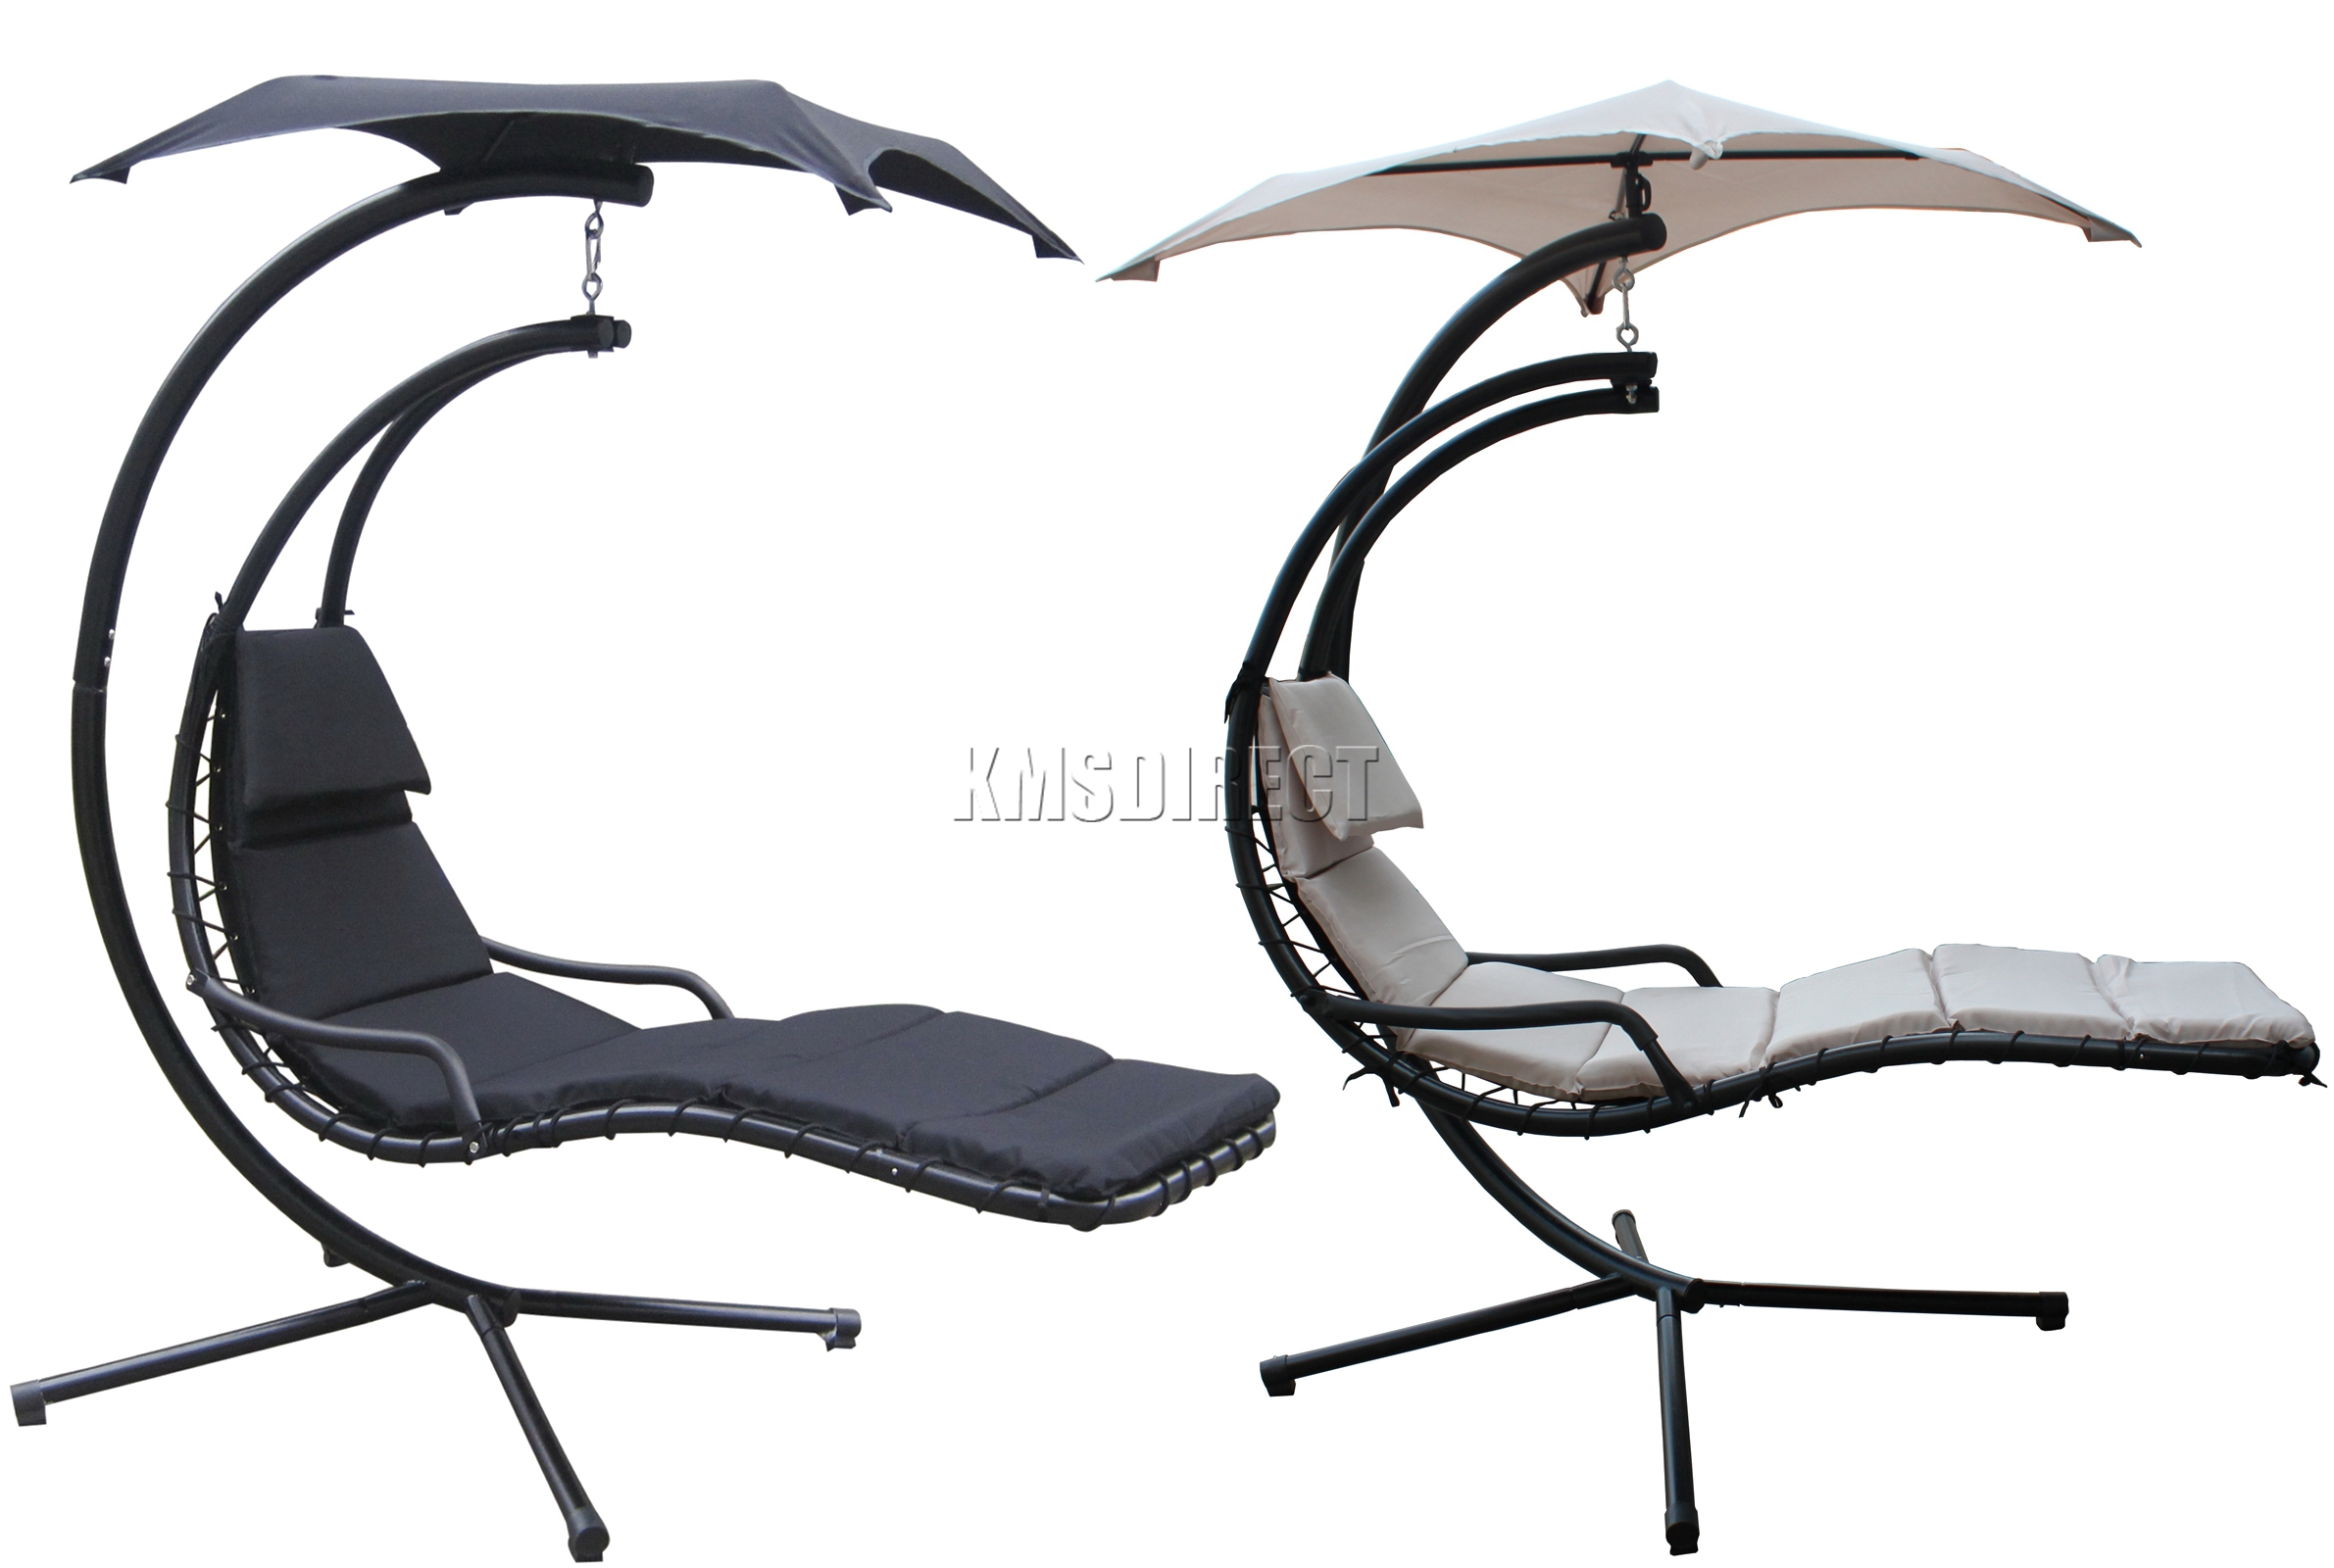 foxhunter garten schaukel h ngematte helikopter h ngender sessel stuhl ebay. Black Bedroom Furniture Sets. Home Design Ideas